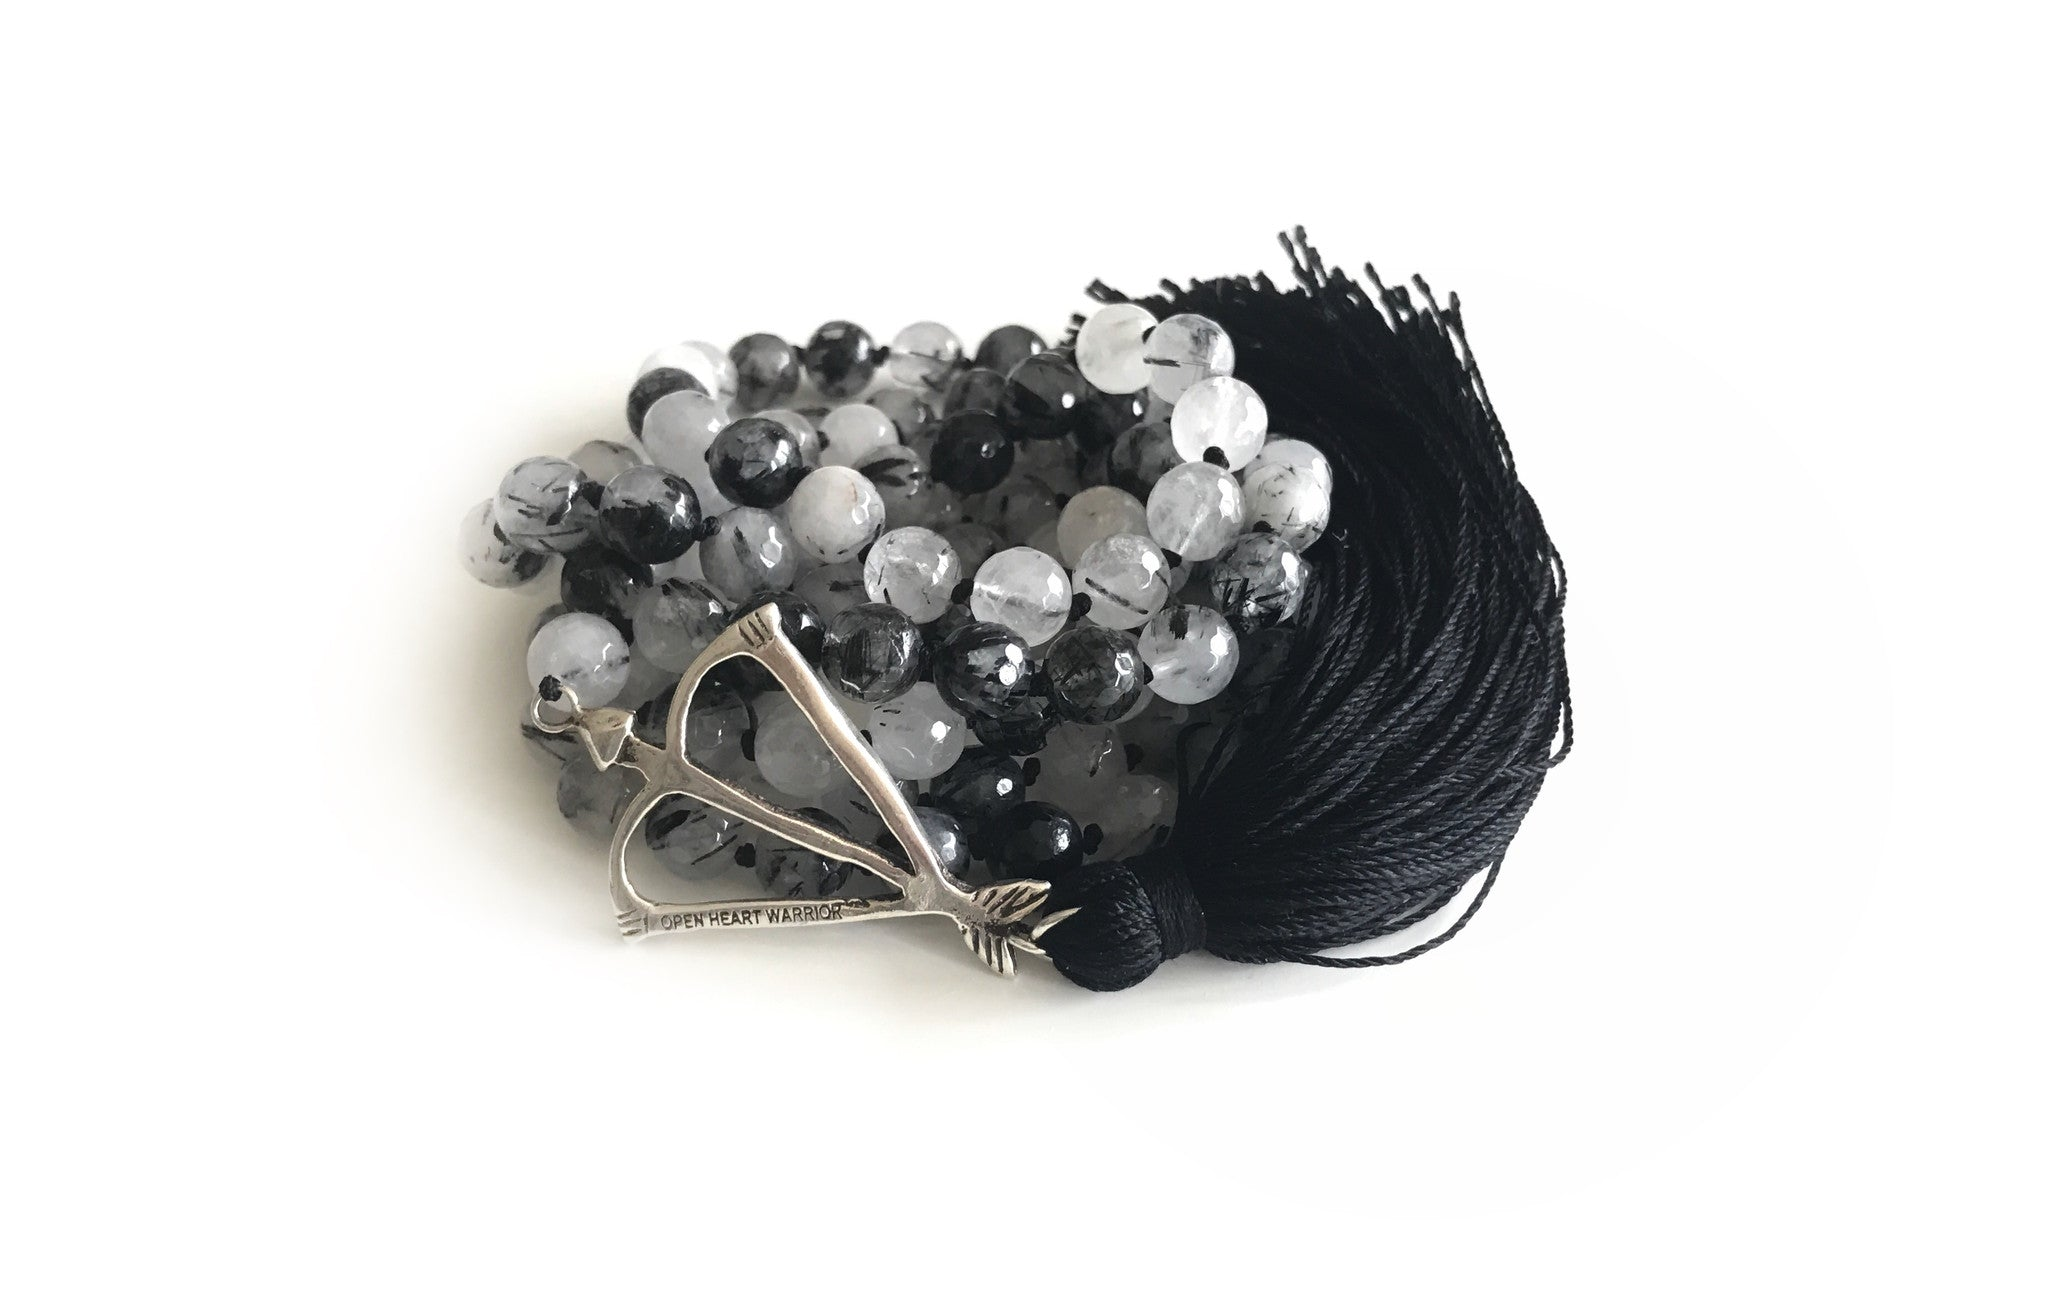 NEW! Limited Edition Open Heart Warrior Black Rutilated Quartz Power & Prosperity 108 Mala